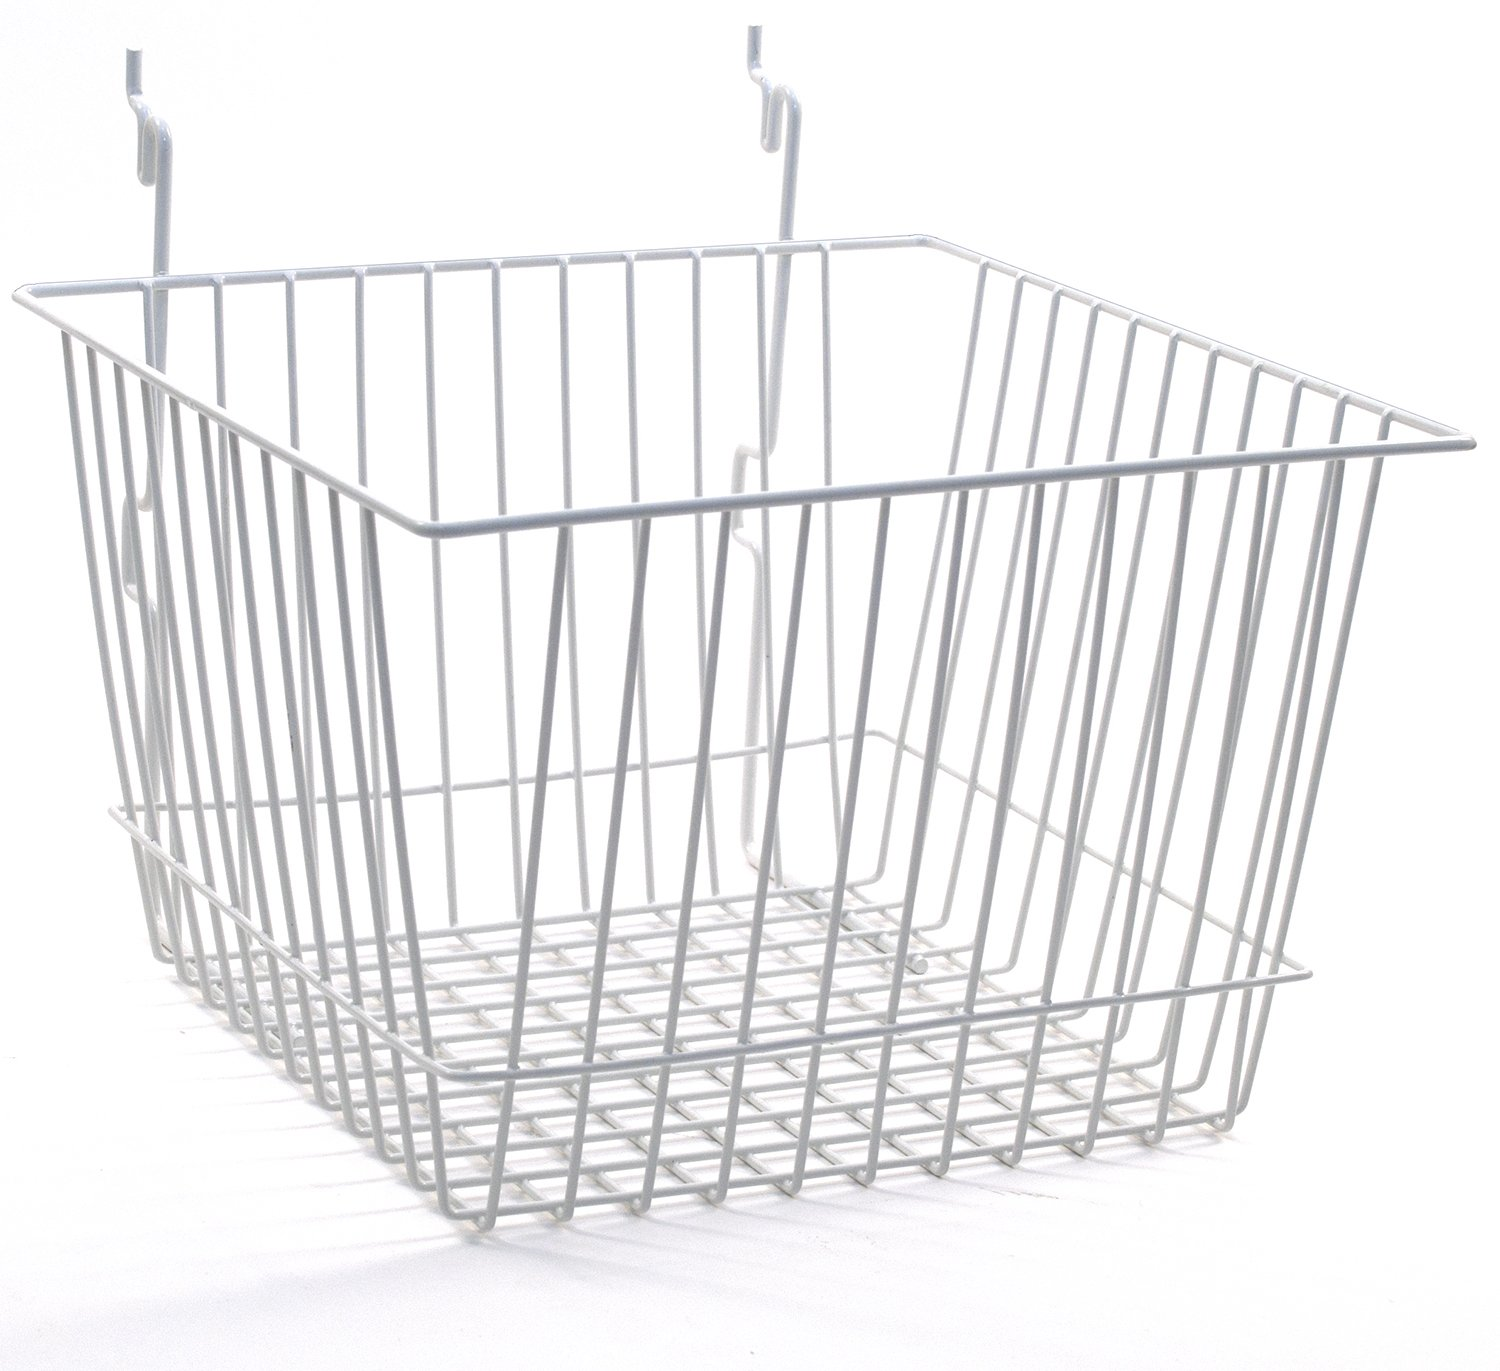 KC Store Fixtures A03008 Basket Fits Slatwall, Grid, Pegboard, 12'' W x 12'' D x 8'' H, White (Pack of 6)